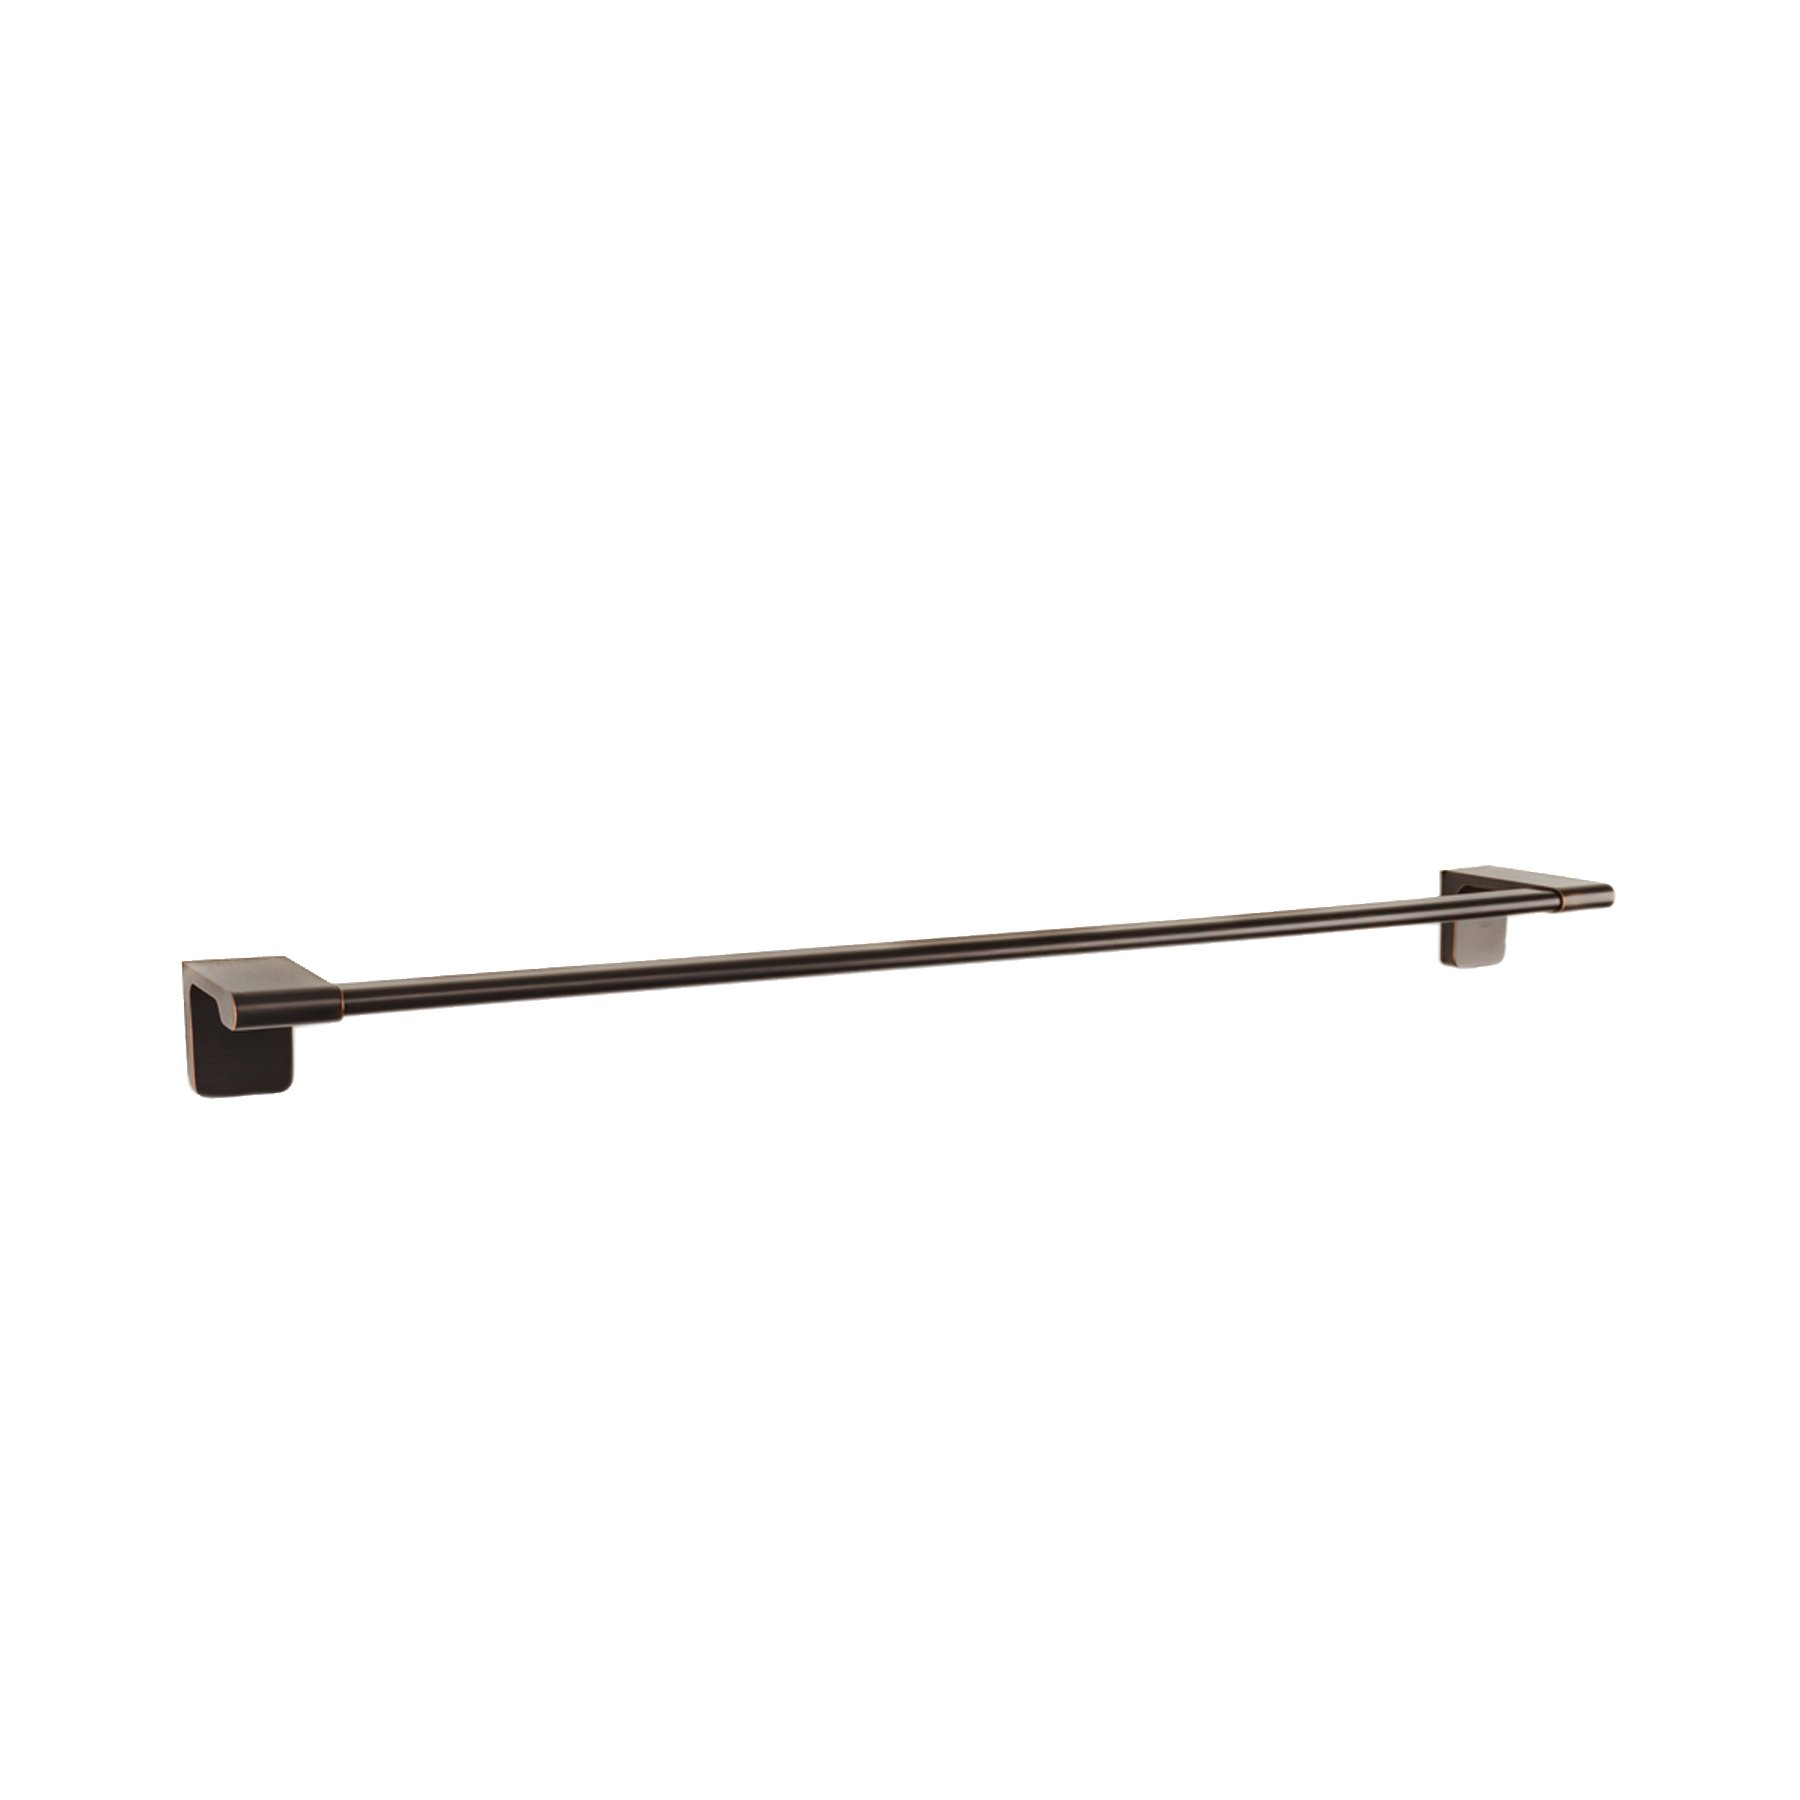 MAYKKE Dash 4-Piece Bathroom Essentials Hardware Accessory Set | 24'' Towel Bar, Double Robe Towel Hook, Towel Ring, & Toilet Paper Holder | 3 Colors to Choose From | Oil-Rubbed Bronze, DLA1002493 by Maykke (Image #3)